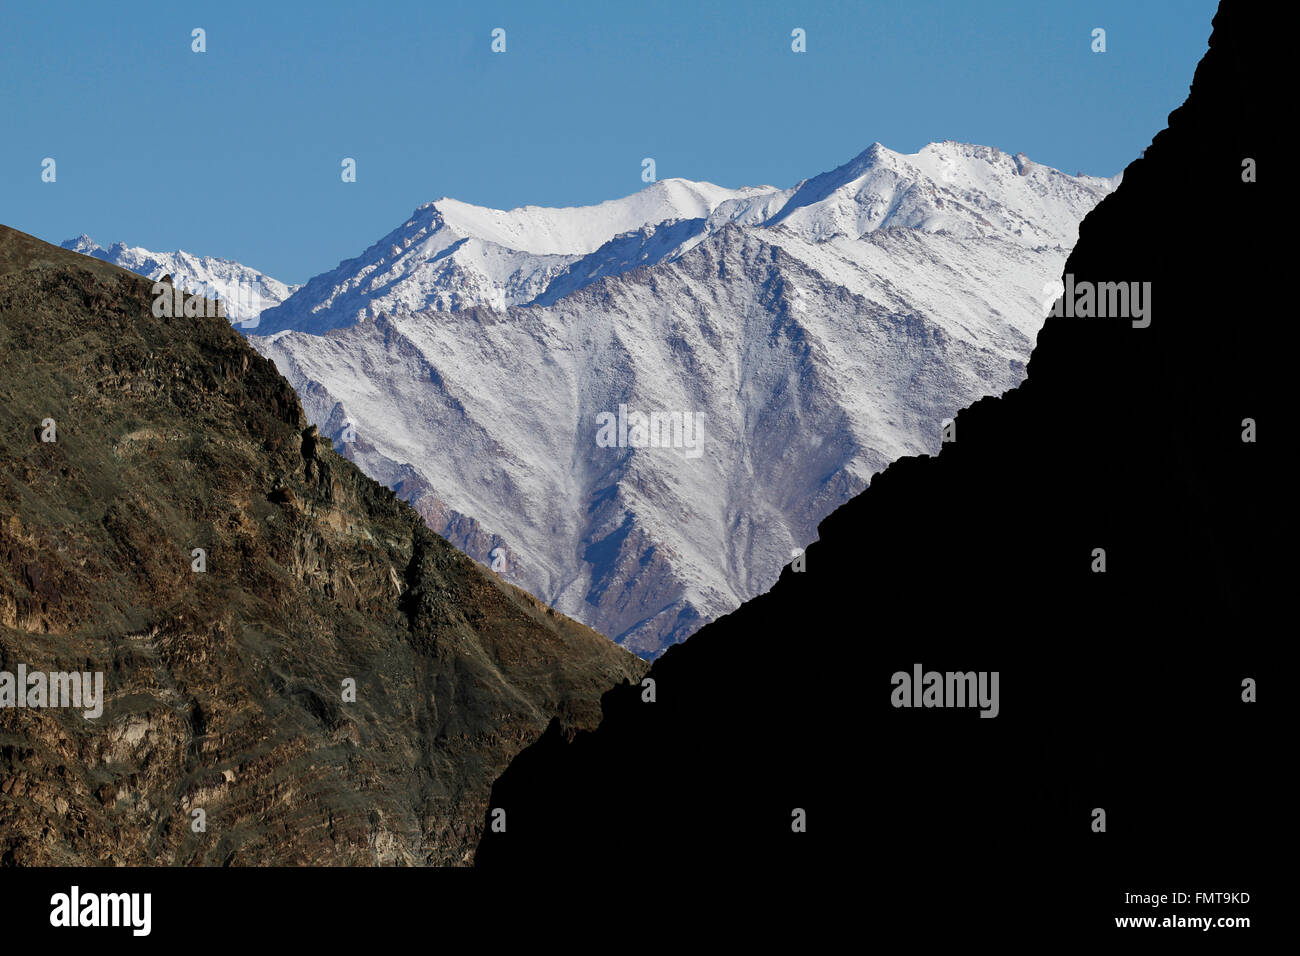 Lights and shadows in Himalayan mountains in Ladakh, India. Hemis High Altitude National Park. - Stock Image